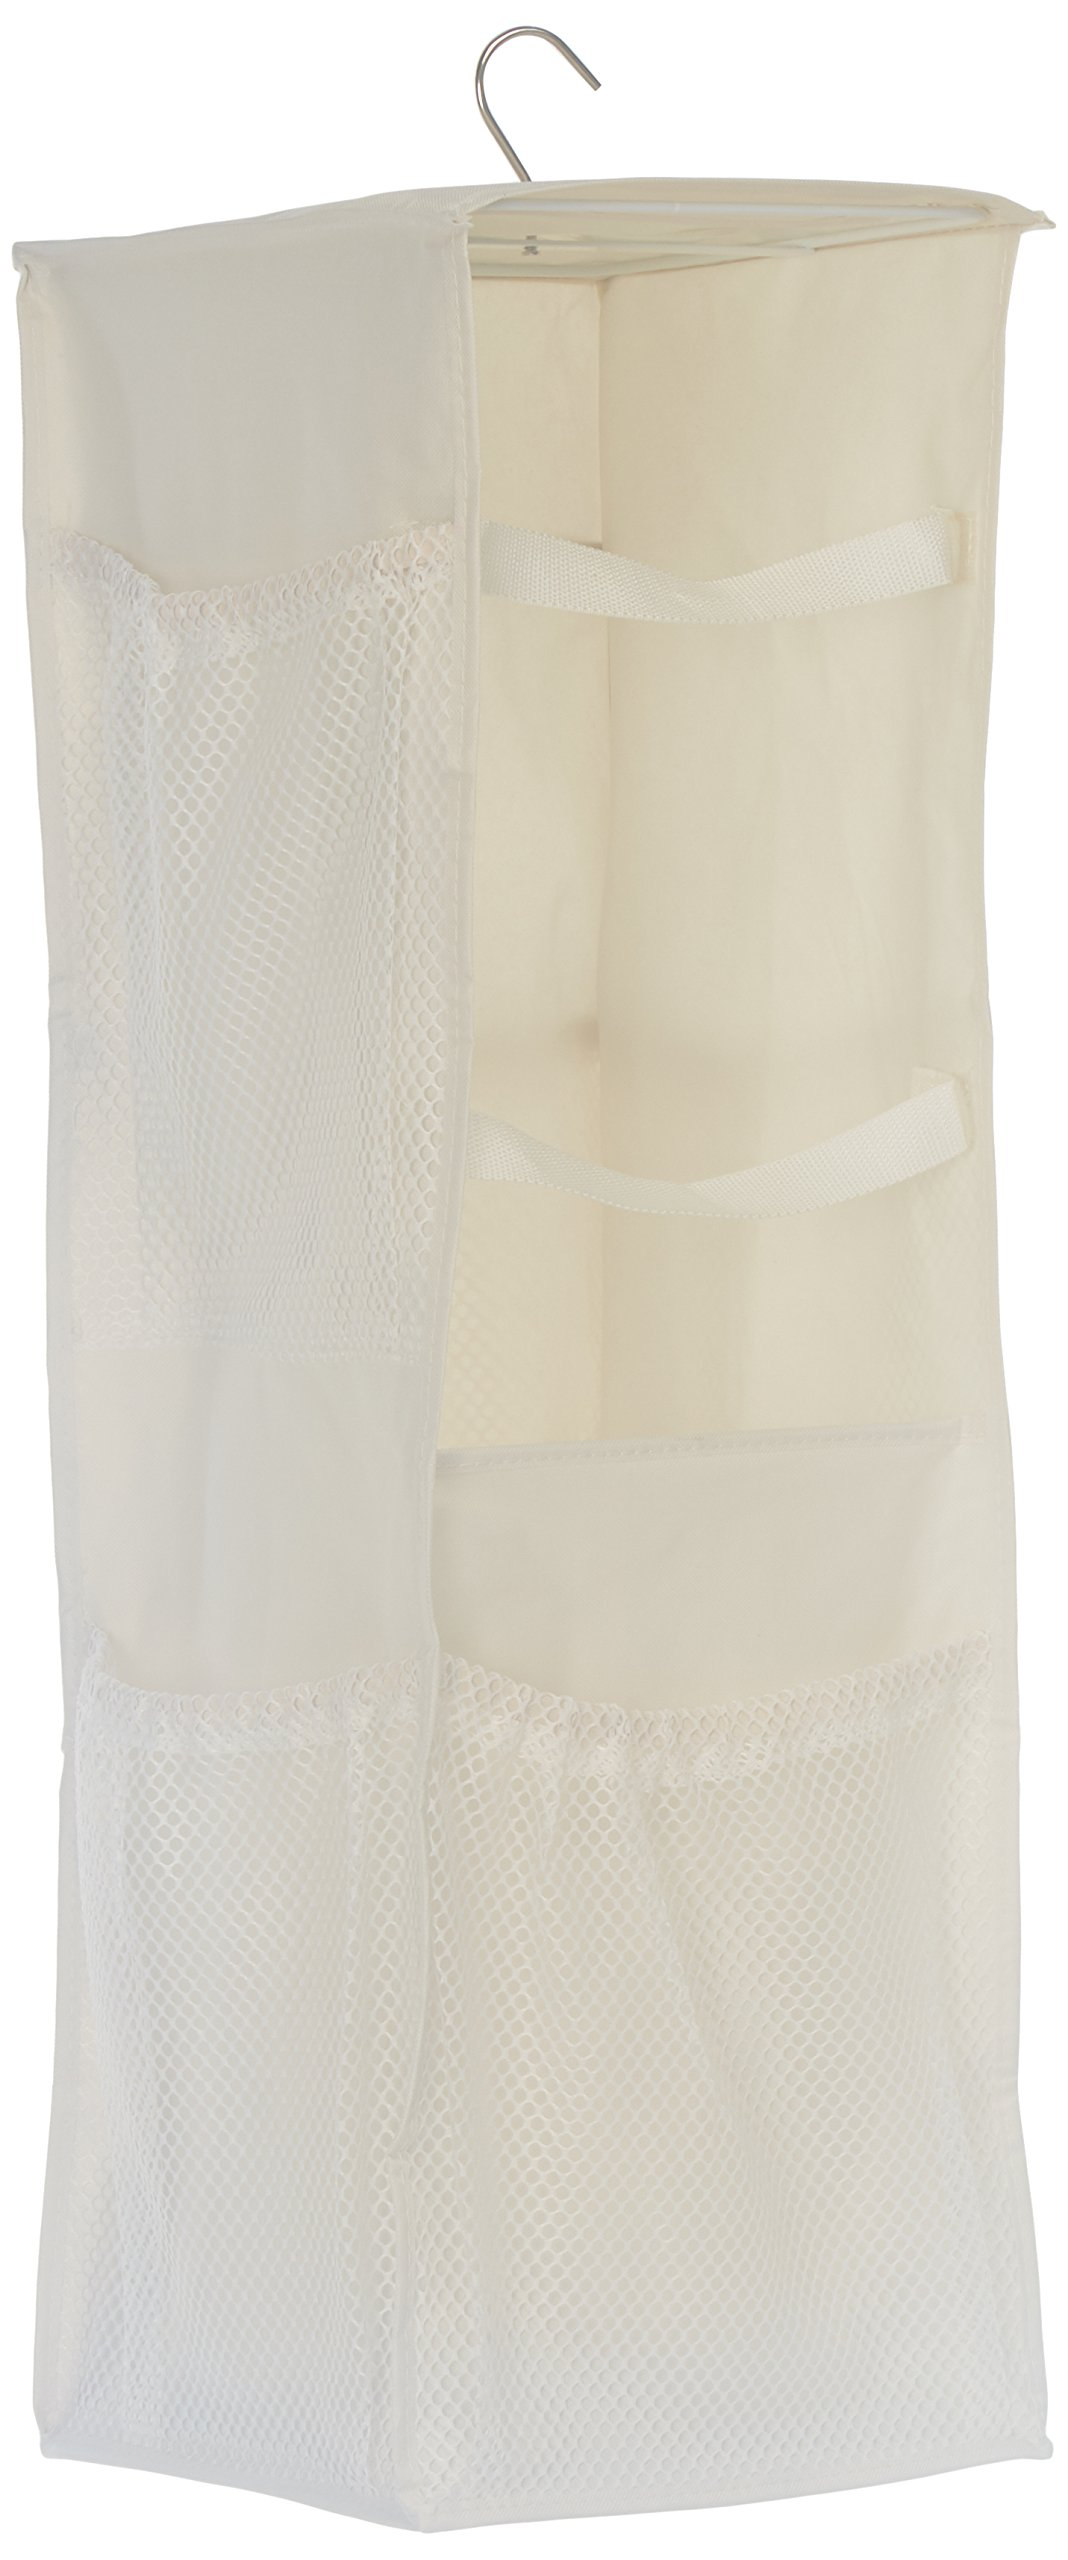 Richards Homewares 64511 Ivory Revolving Giftwrap Organizer Holiday